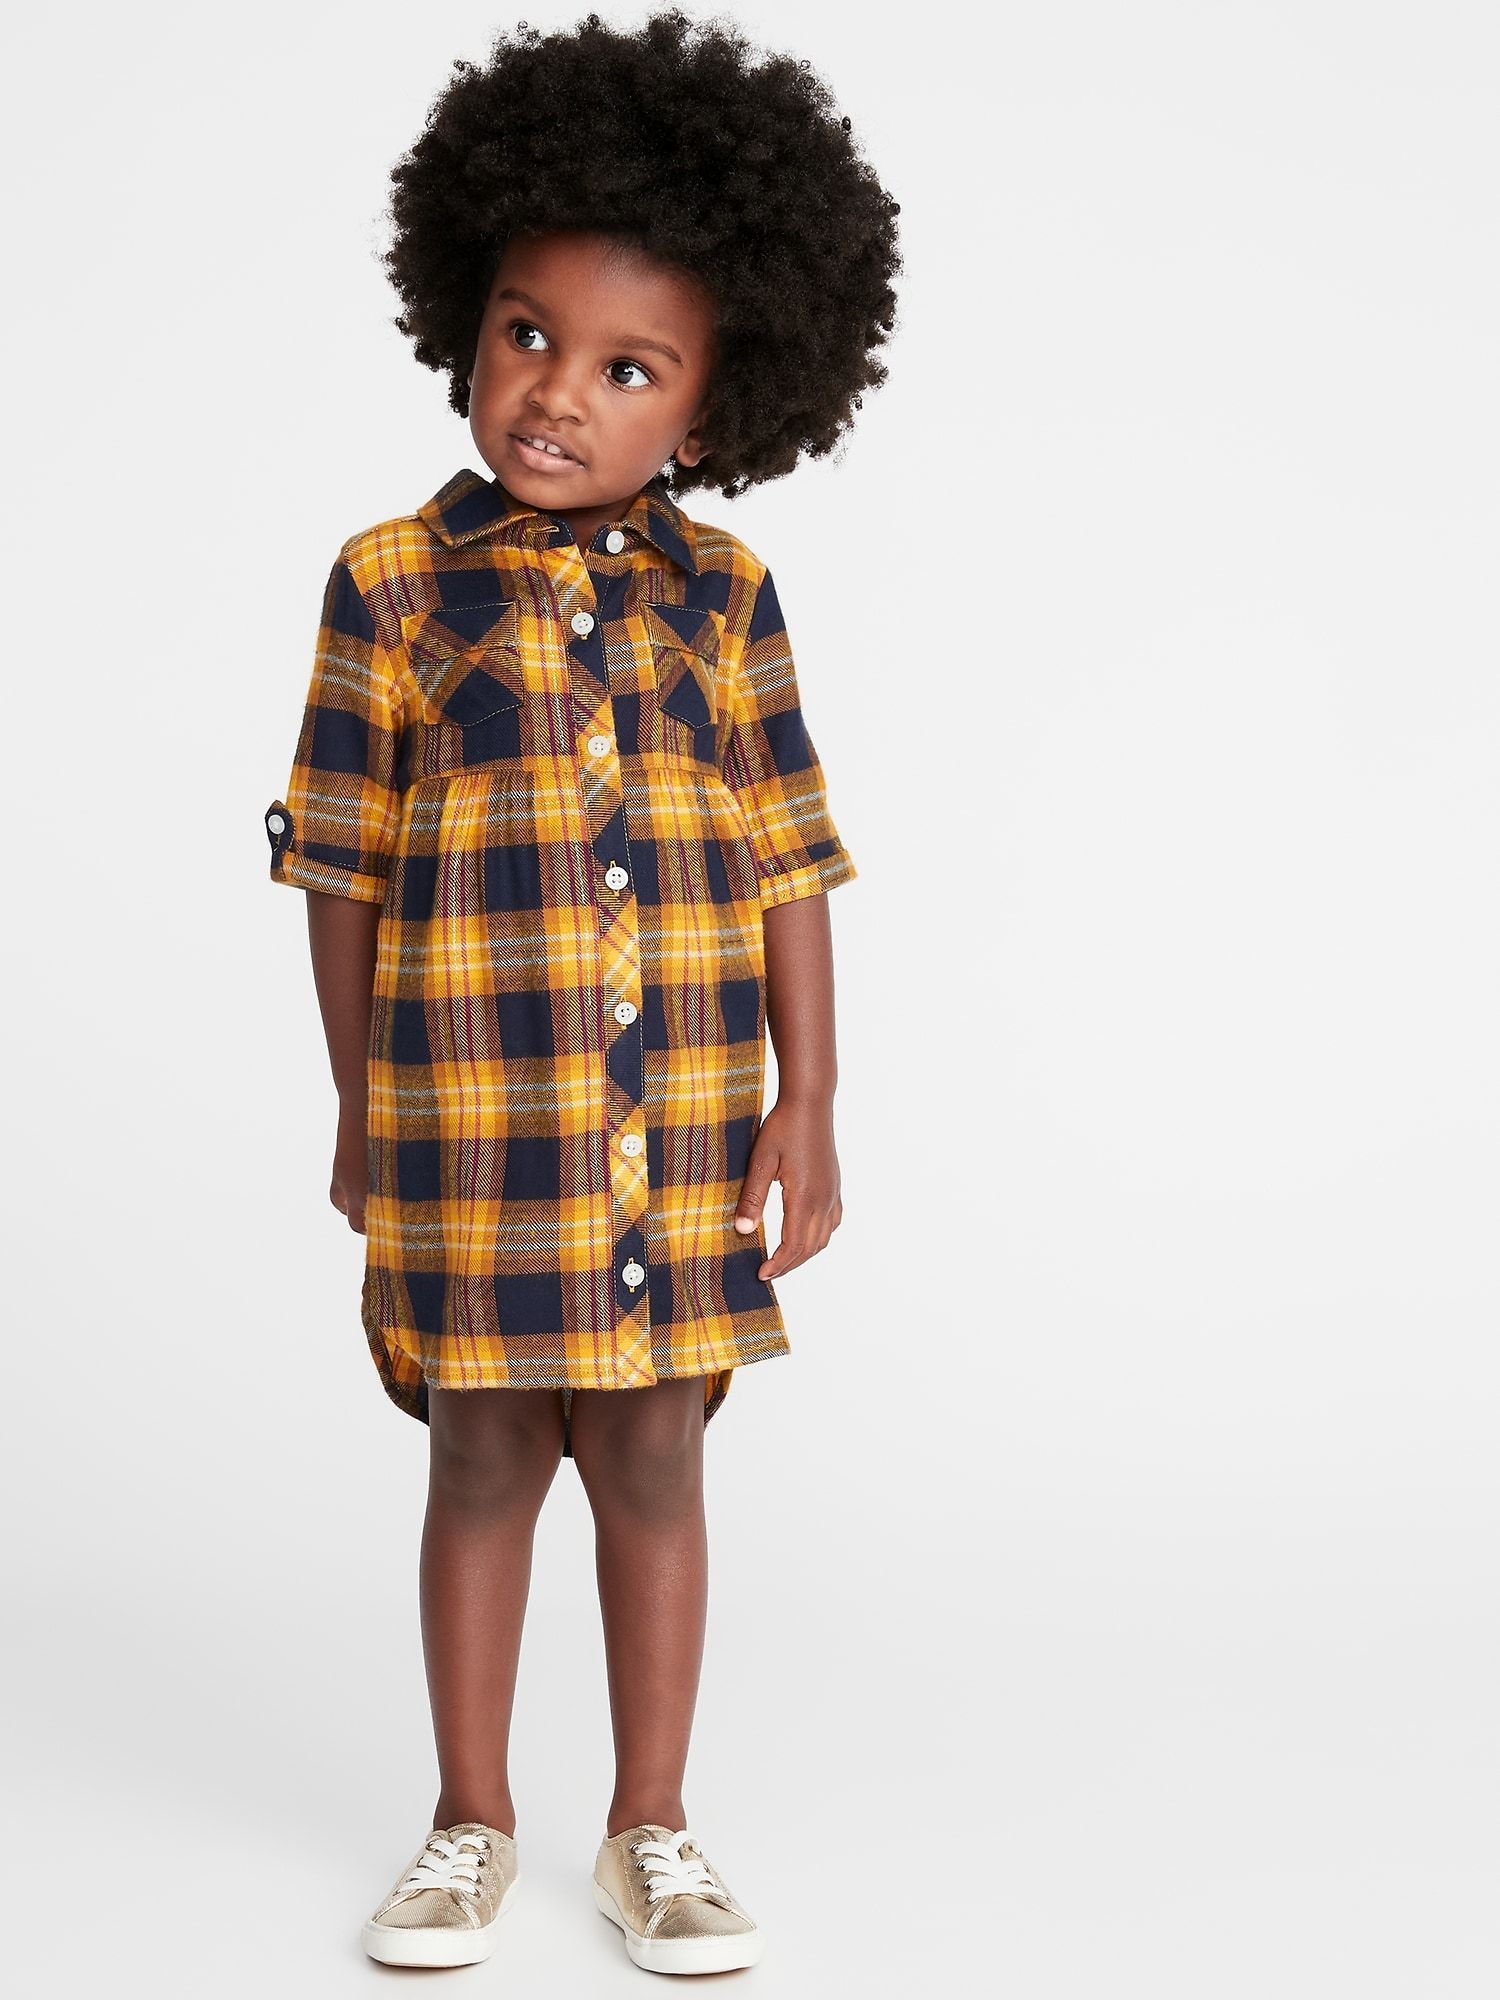 Plaid Flannel Shirt Dress For Toddler Girls Old Navy